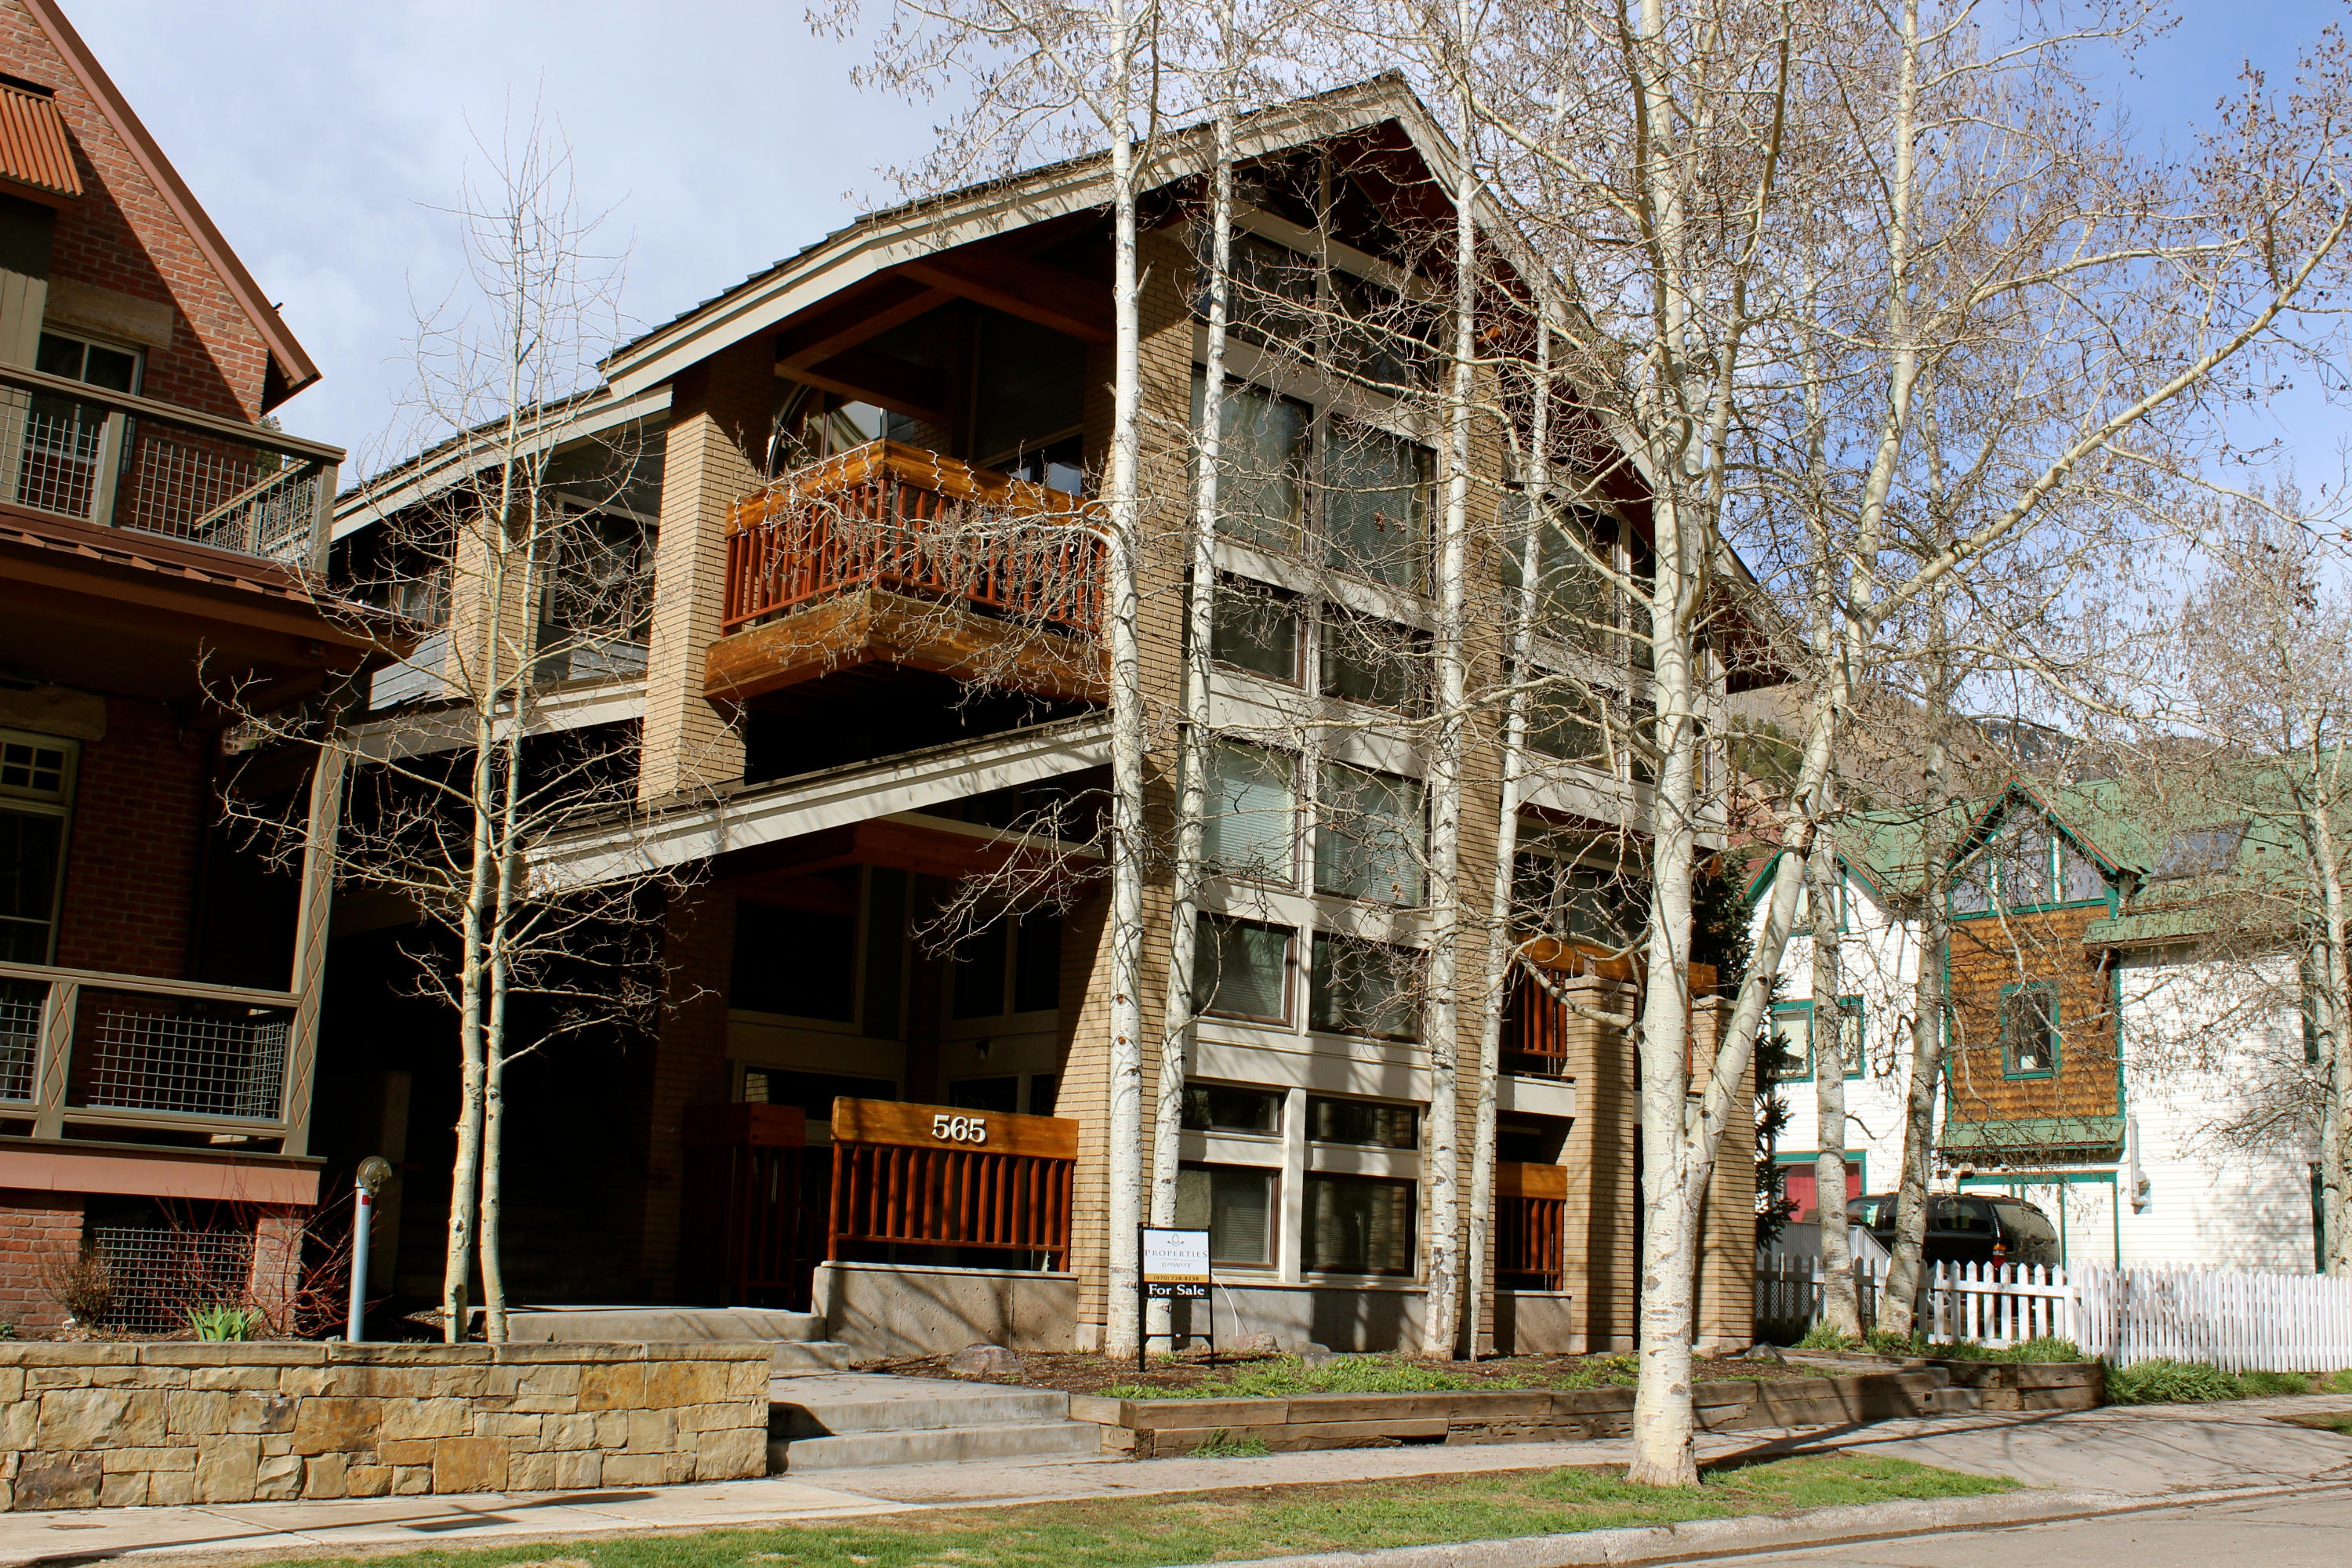 565 W Pacific Ave, Telluride, CO 81435